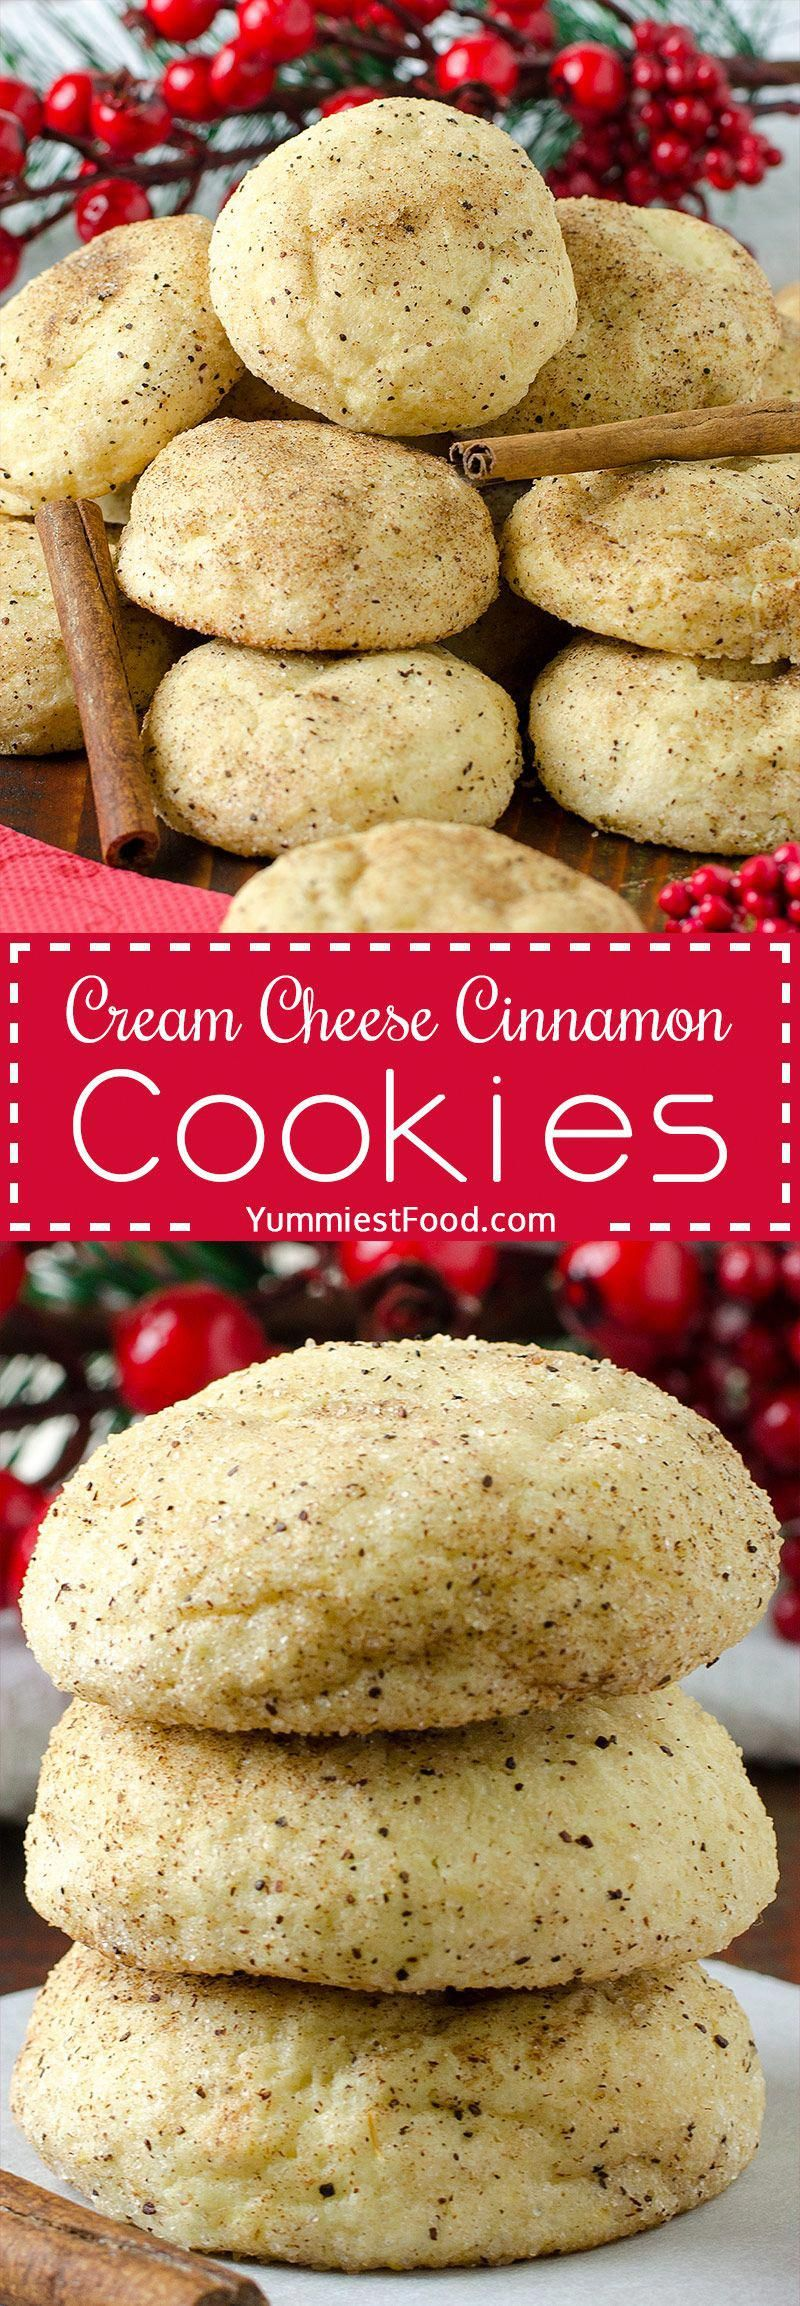 Easy Cream Cheese Cinnamon Christmas Cookies Recipe